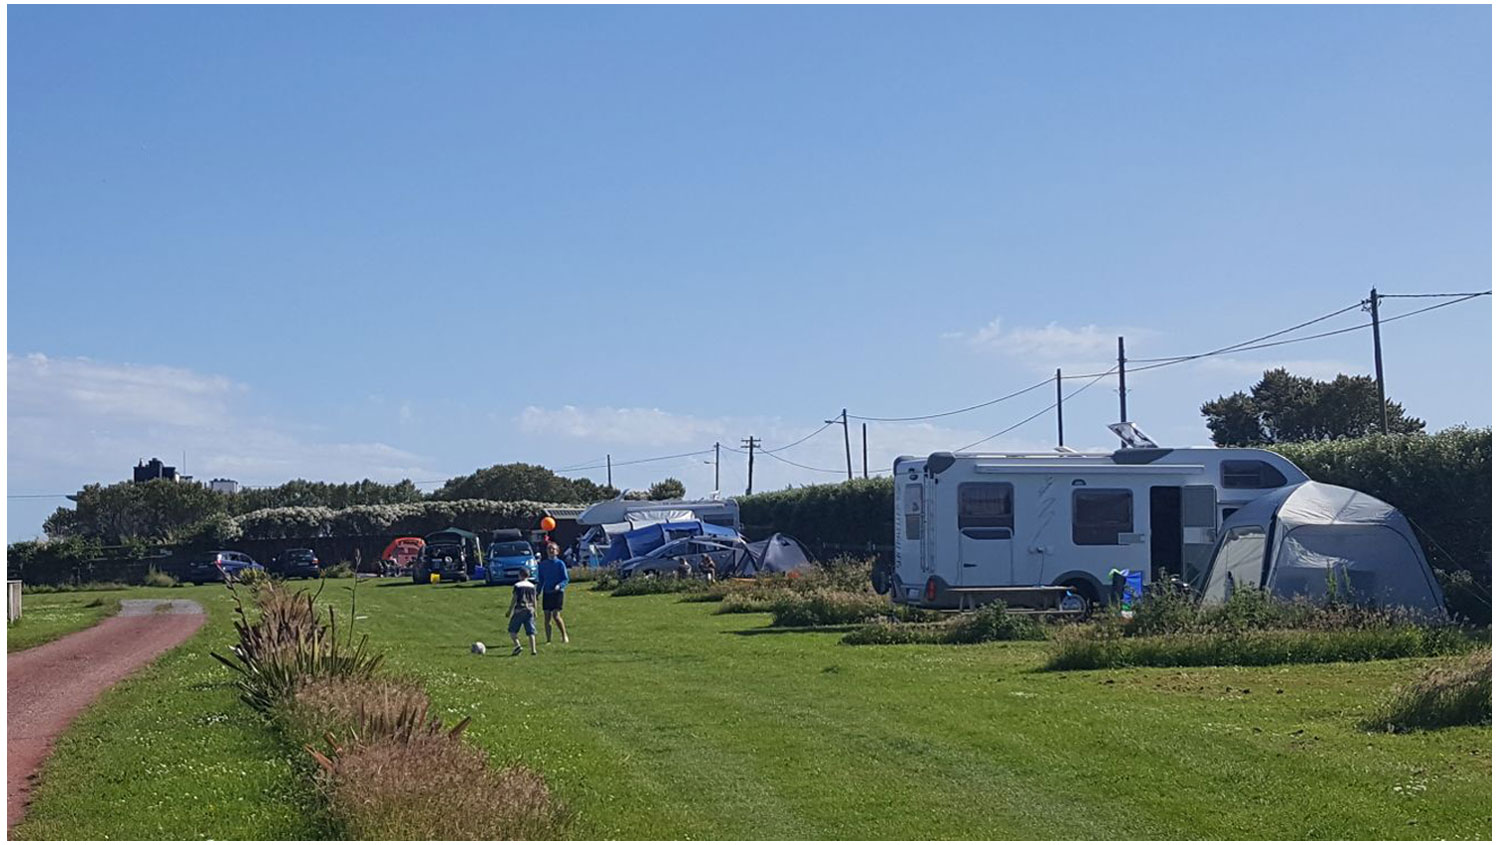 Motorhome1-Camping-Campervans-Motorhomes-Lynders-Mobile-Home-Park-PortraneDonabate-North-County-Dublin-Fingal